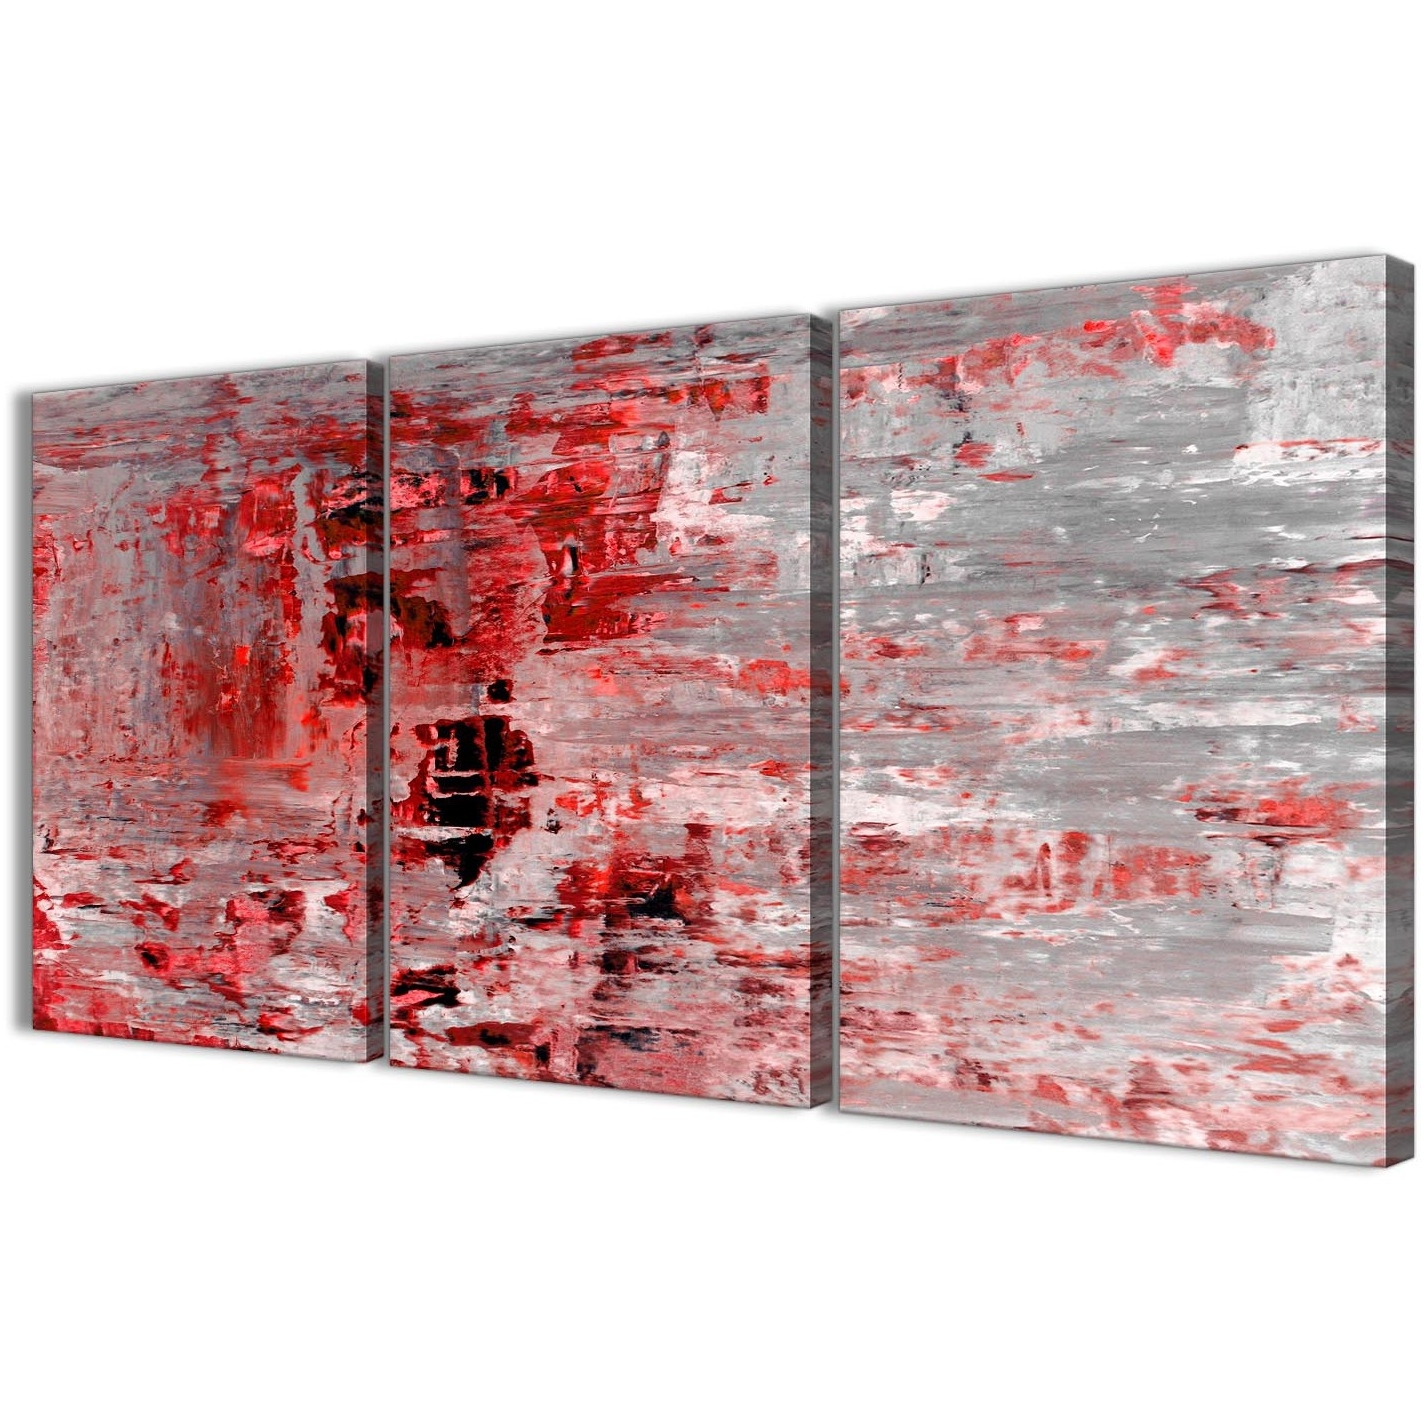 Red Wall Art Throughout Fashionable 3 Piece Red Grey Painting Living Room Canvas Wall Art Decor (View 12 of 15)